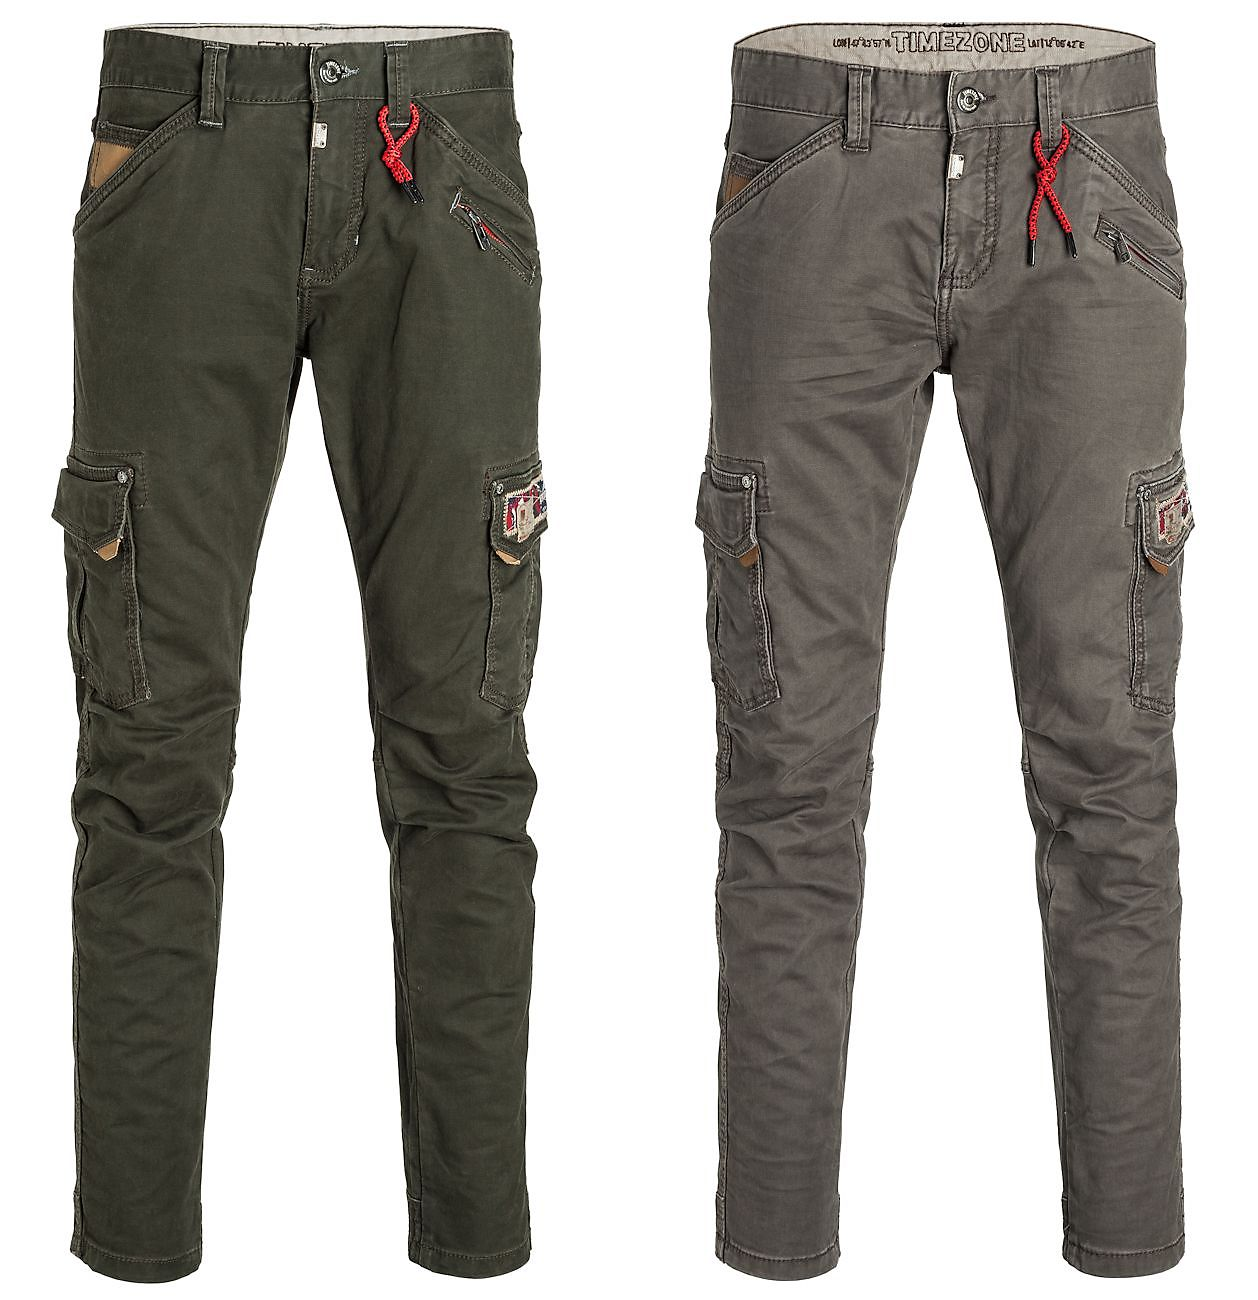 Details about Timezone Men's Cargo Pants 26 10035 Roger Regular Fit Slim Leg Mens Trousers Pants show original title